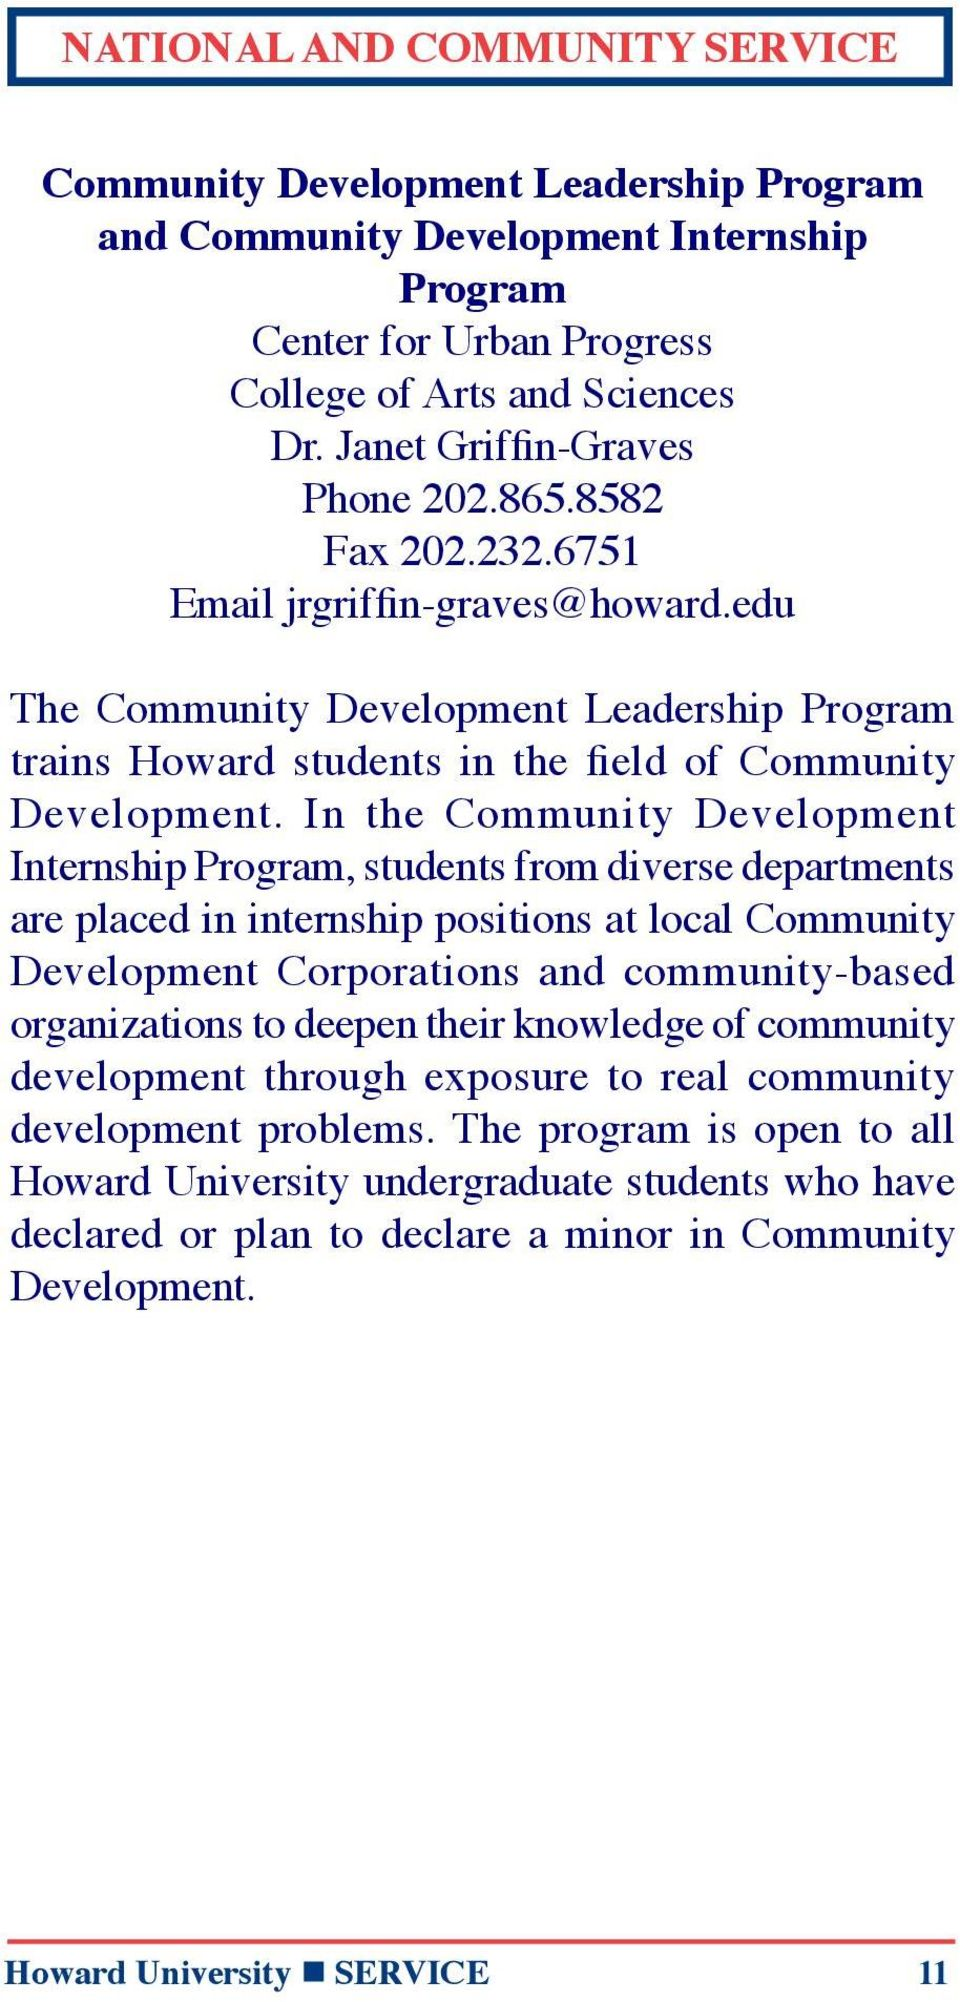 In the Community Development Internship Program, students from diverse departments are placed in internship positions at local Community Development Corporations and community-based organizations to